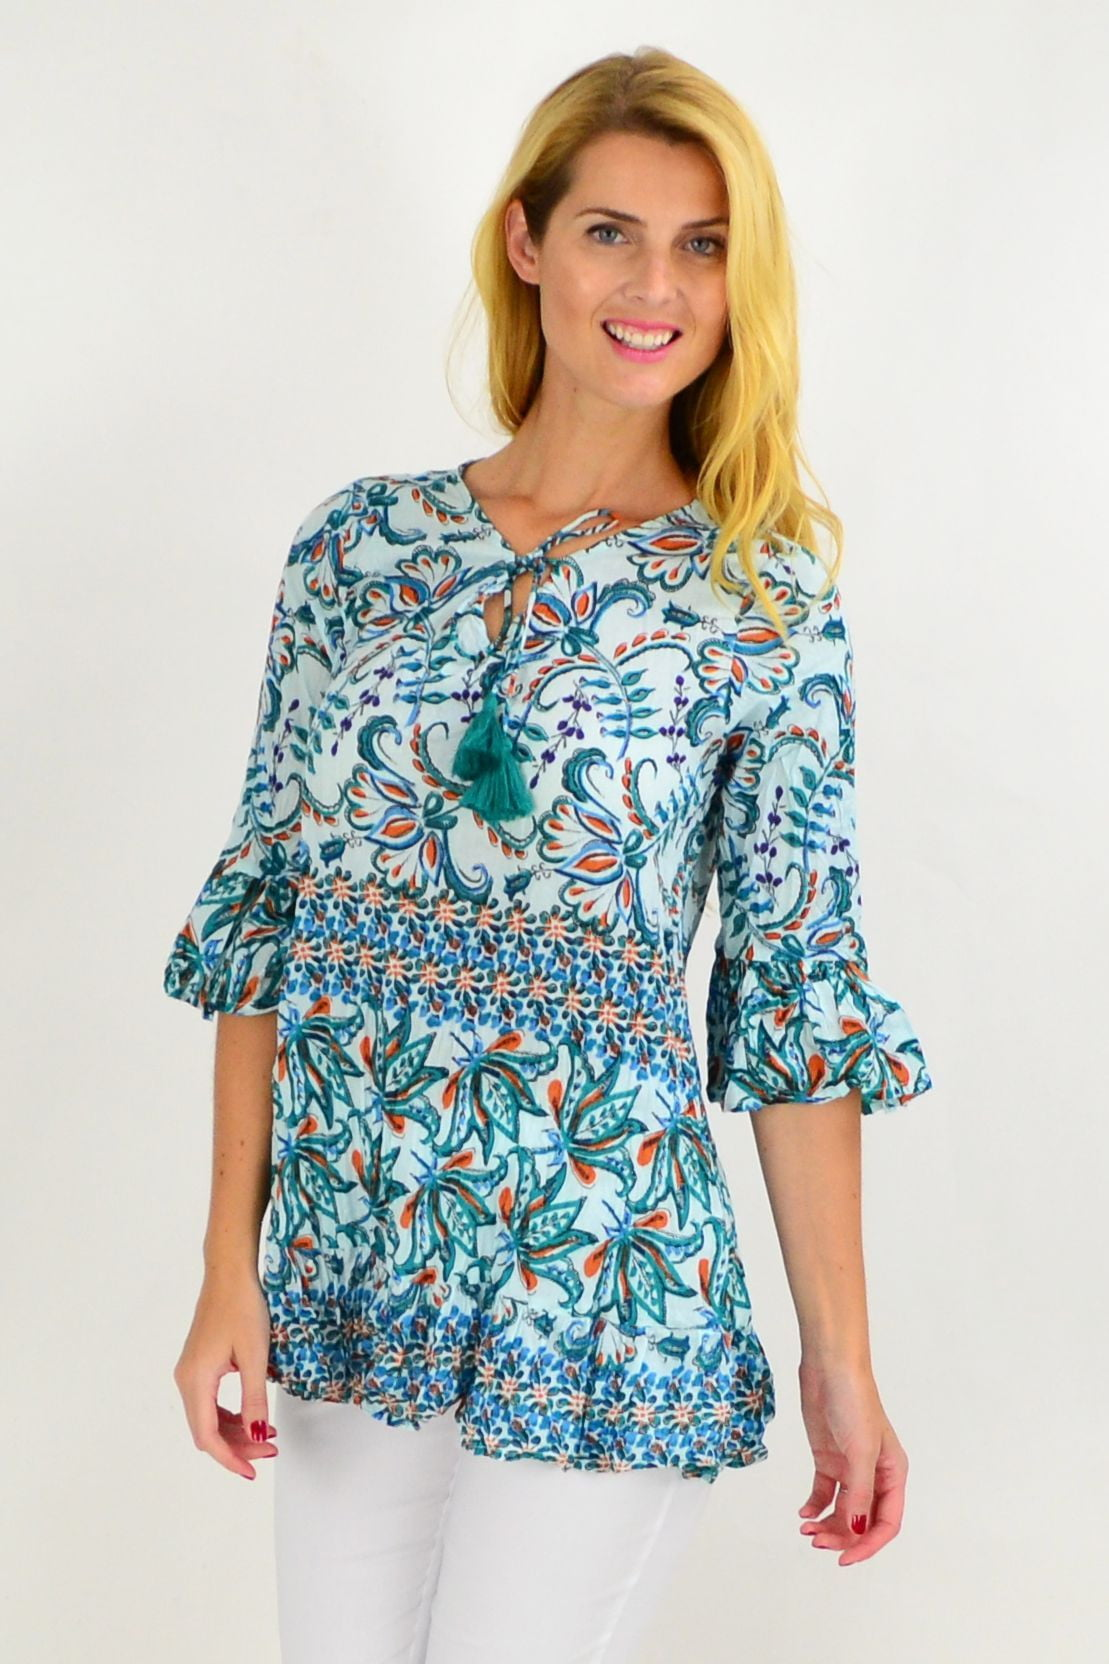 Blue Green Vine Print Tunic Top | I Love Tunics | Tunic Tops | Tunic | Tunic Dresses  | womens clothing online